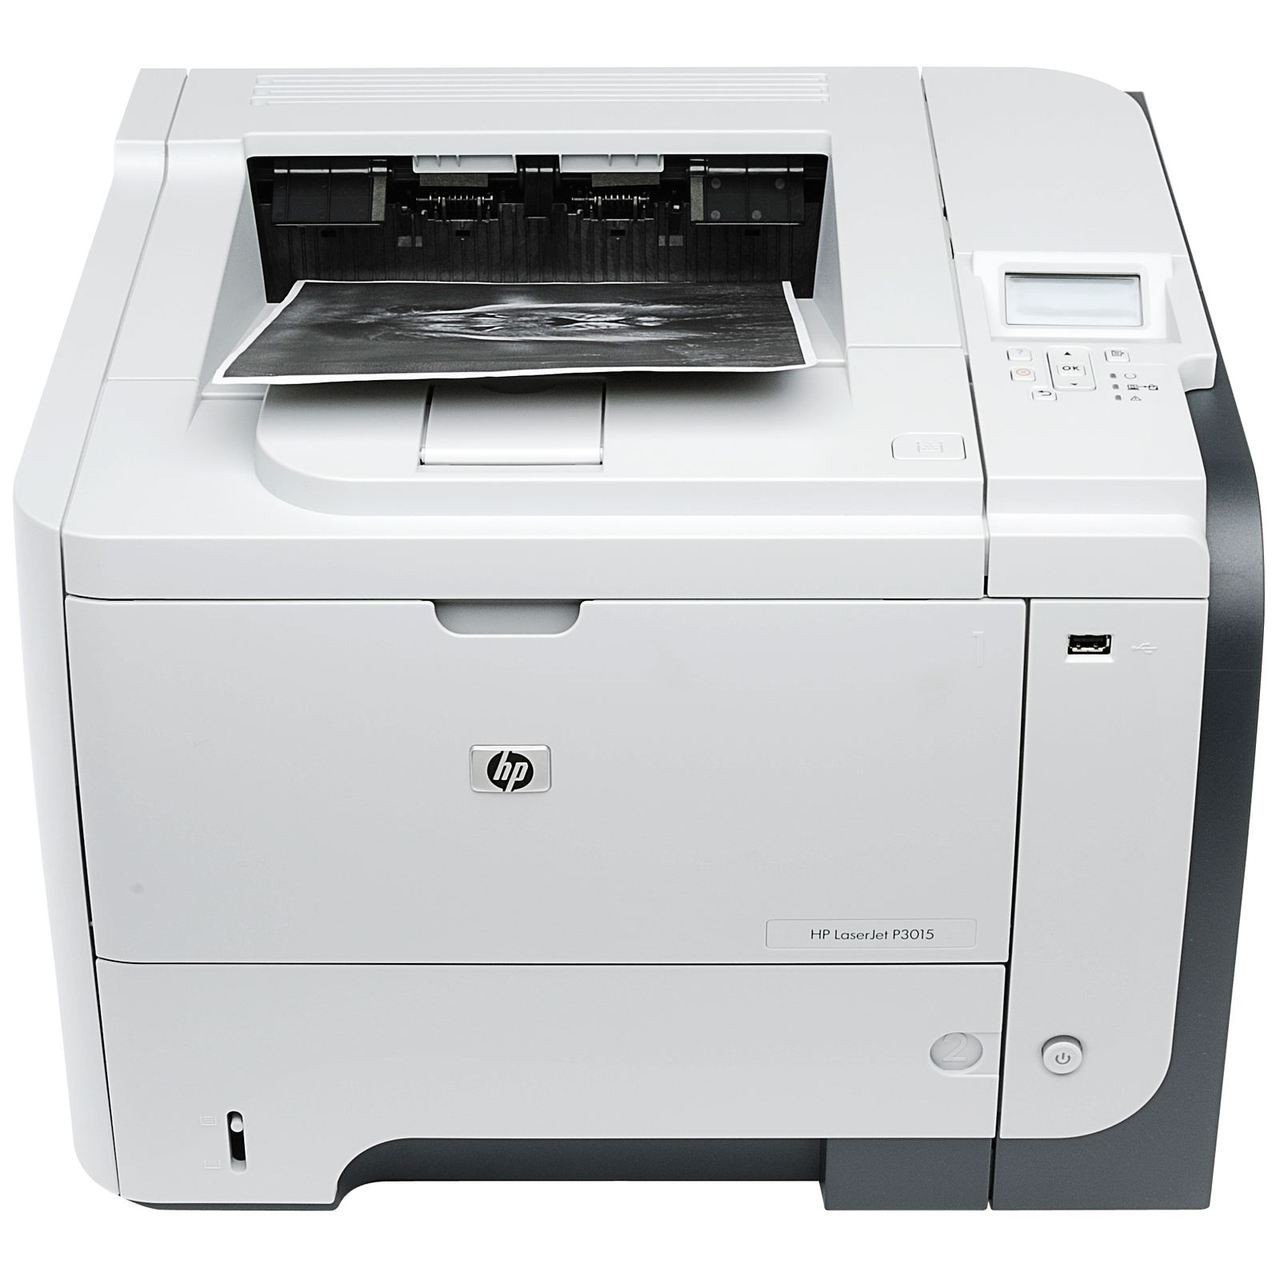 HP LaserJet P3015dn - CE528A - HP Laser Printer for sale - HP 3015 Printer